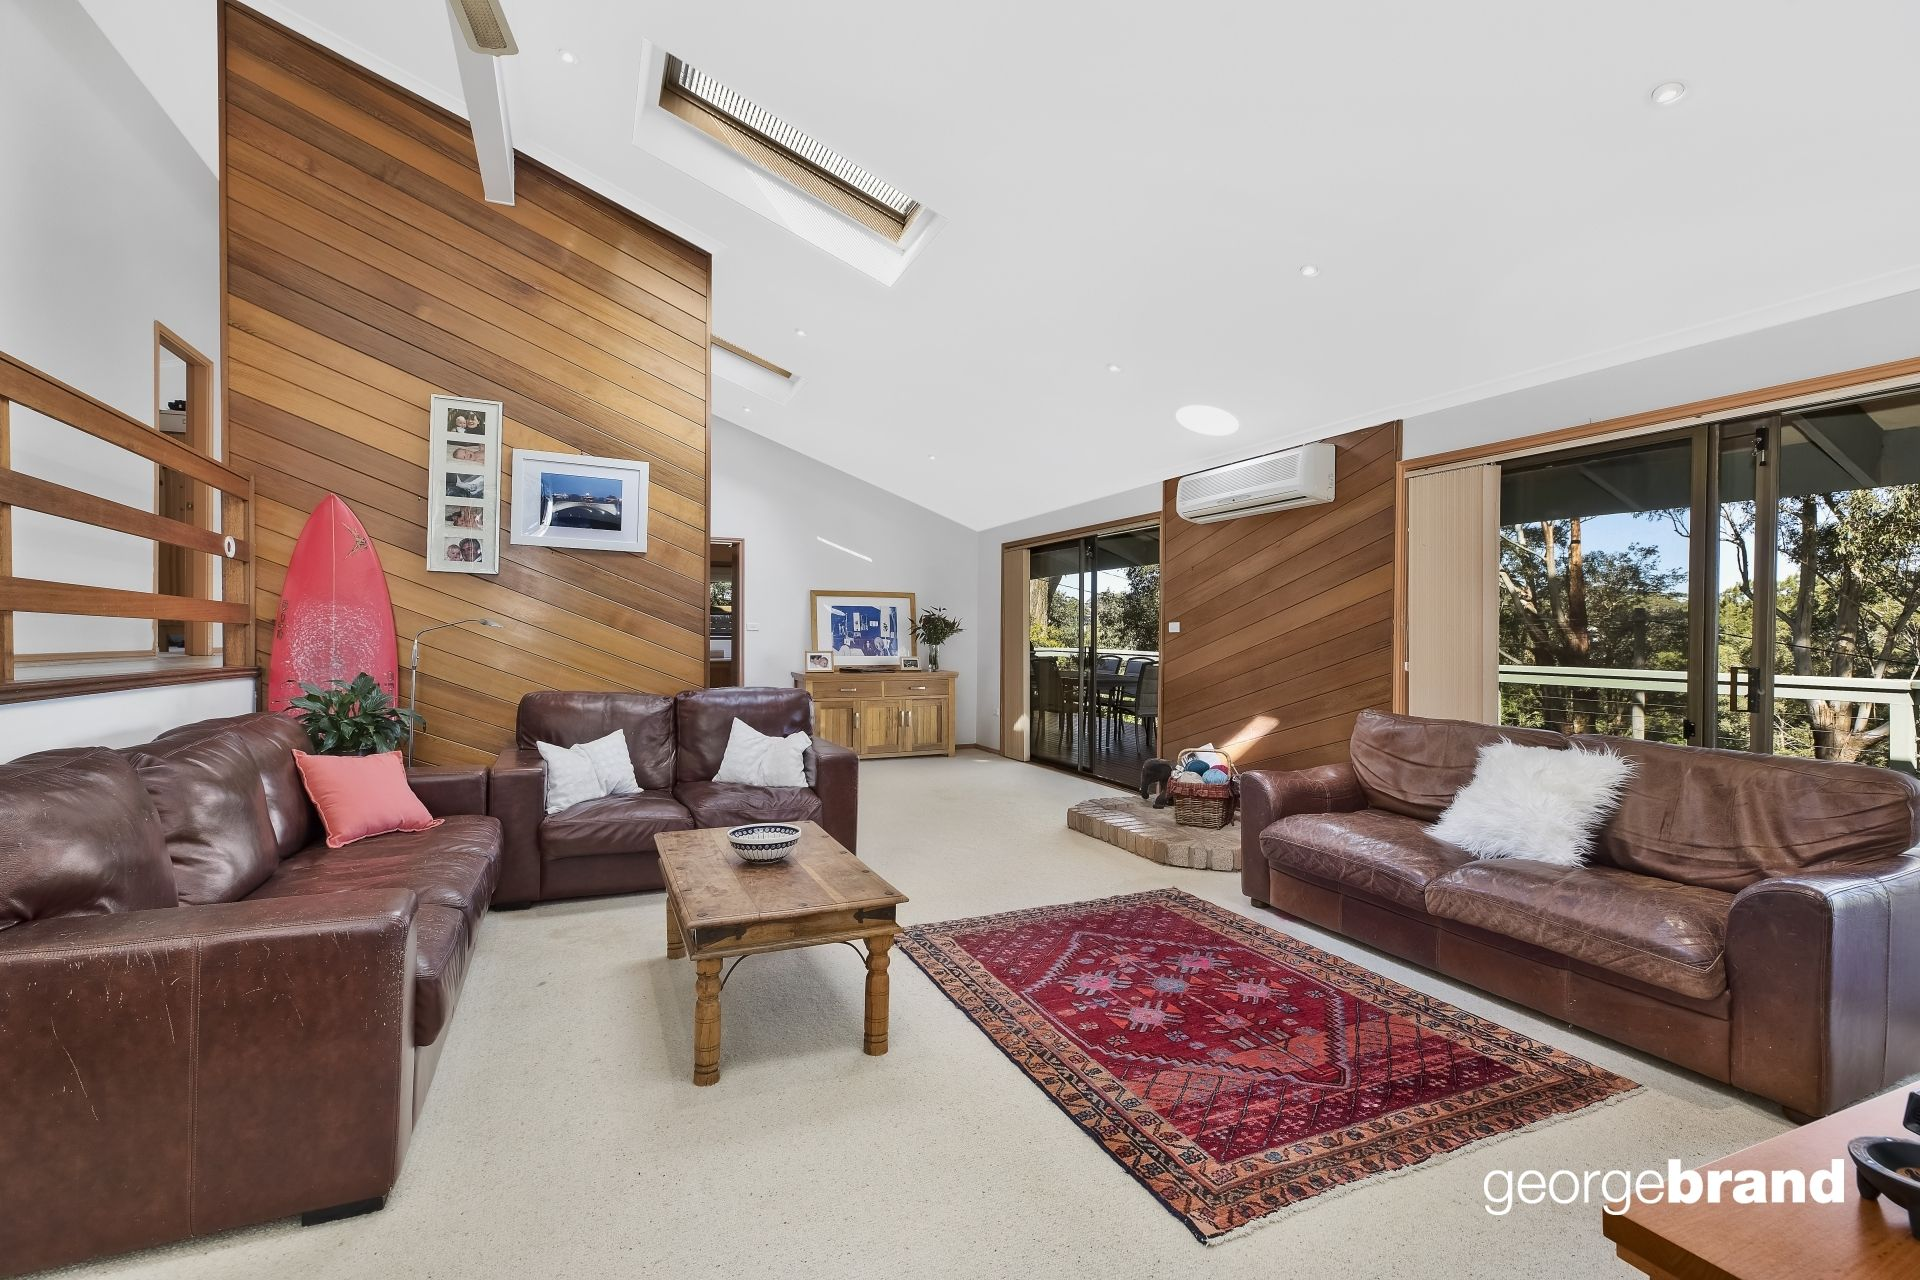 Avoca Beach Real Estate: MORE THAN MEETS THE EYE!